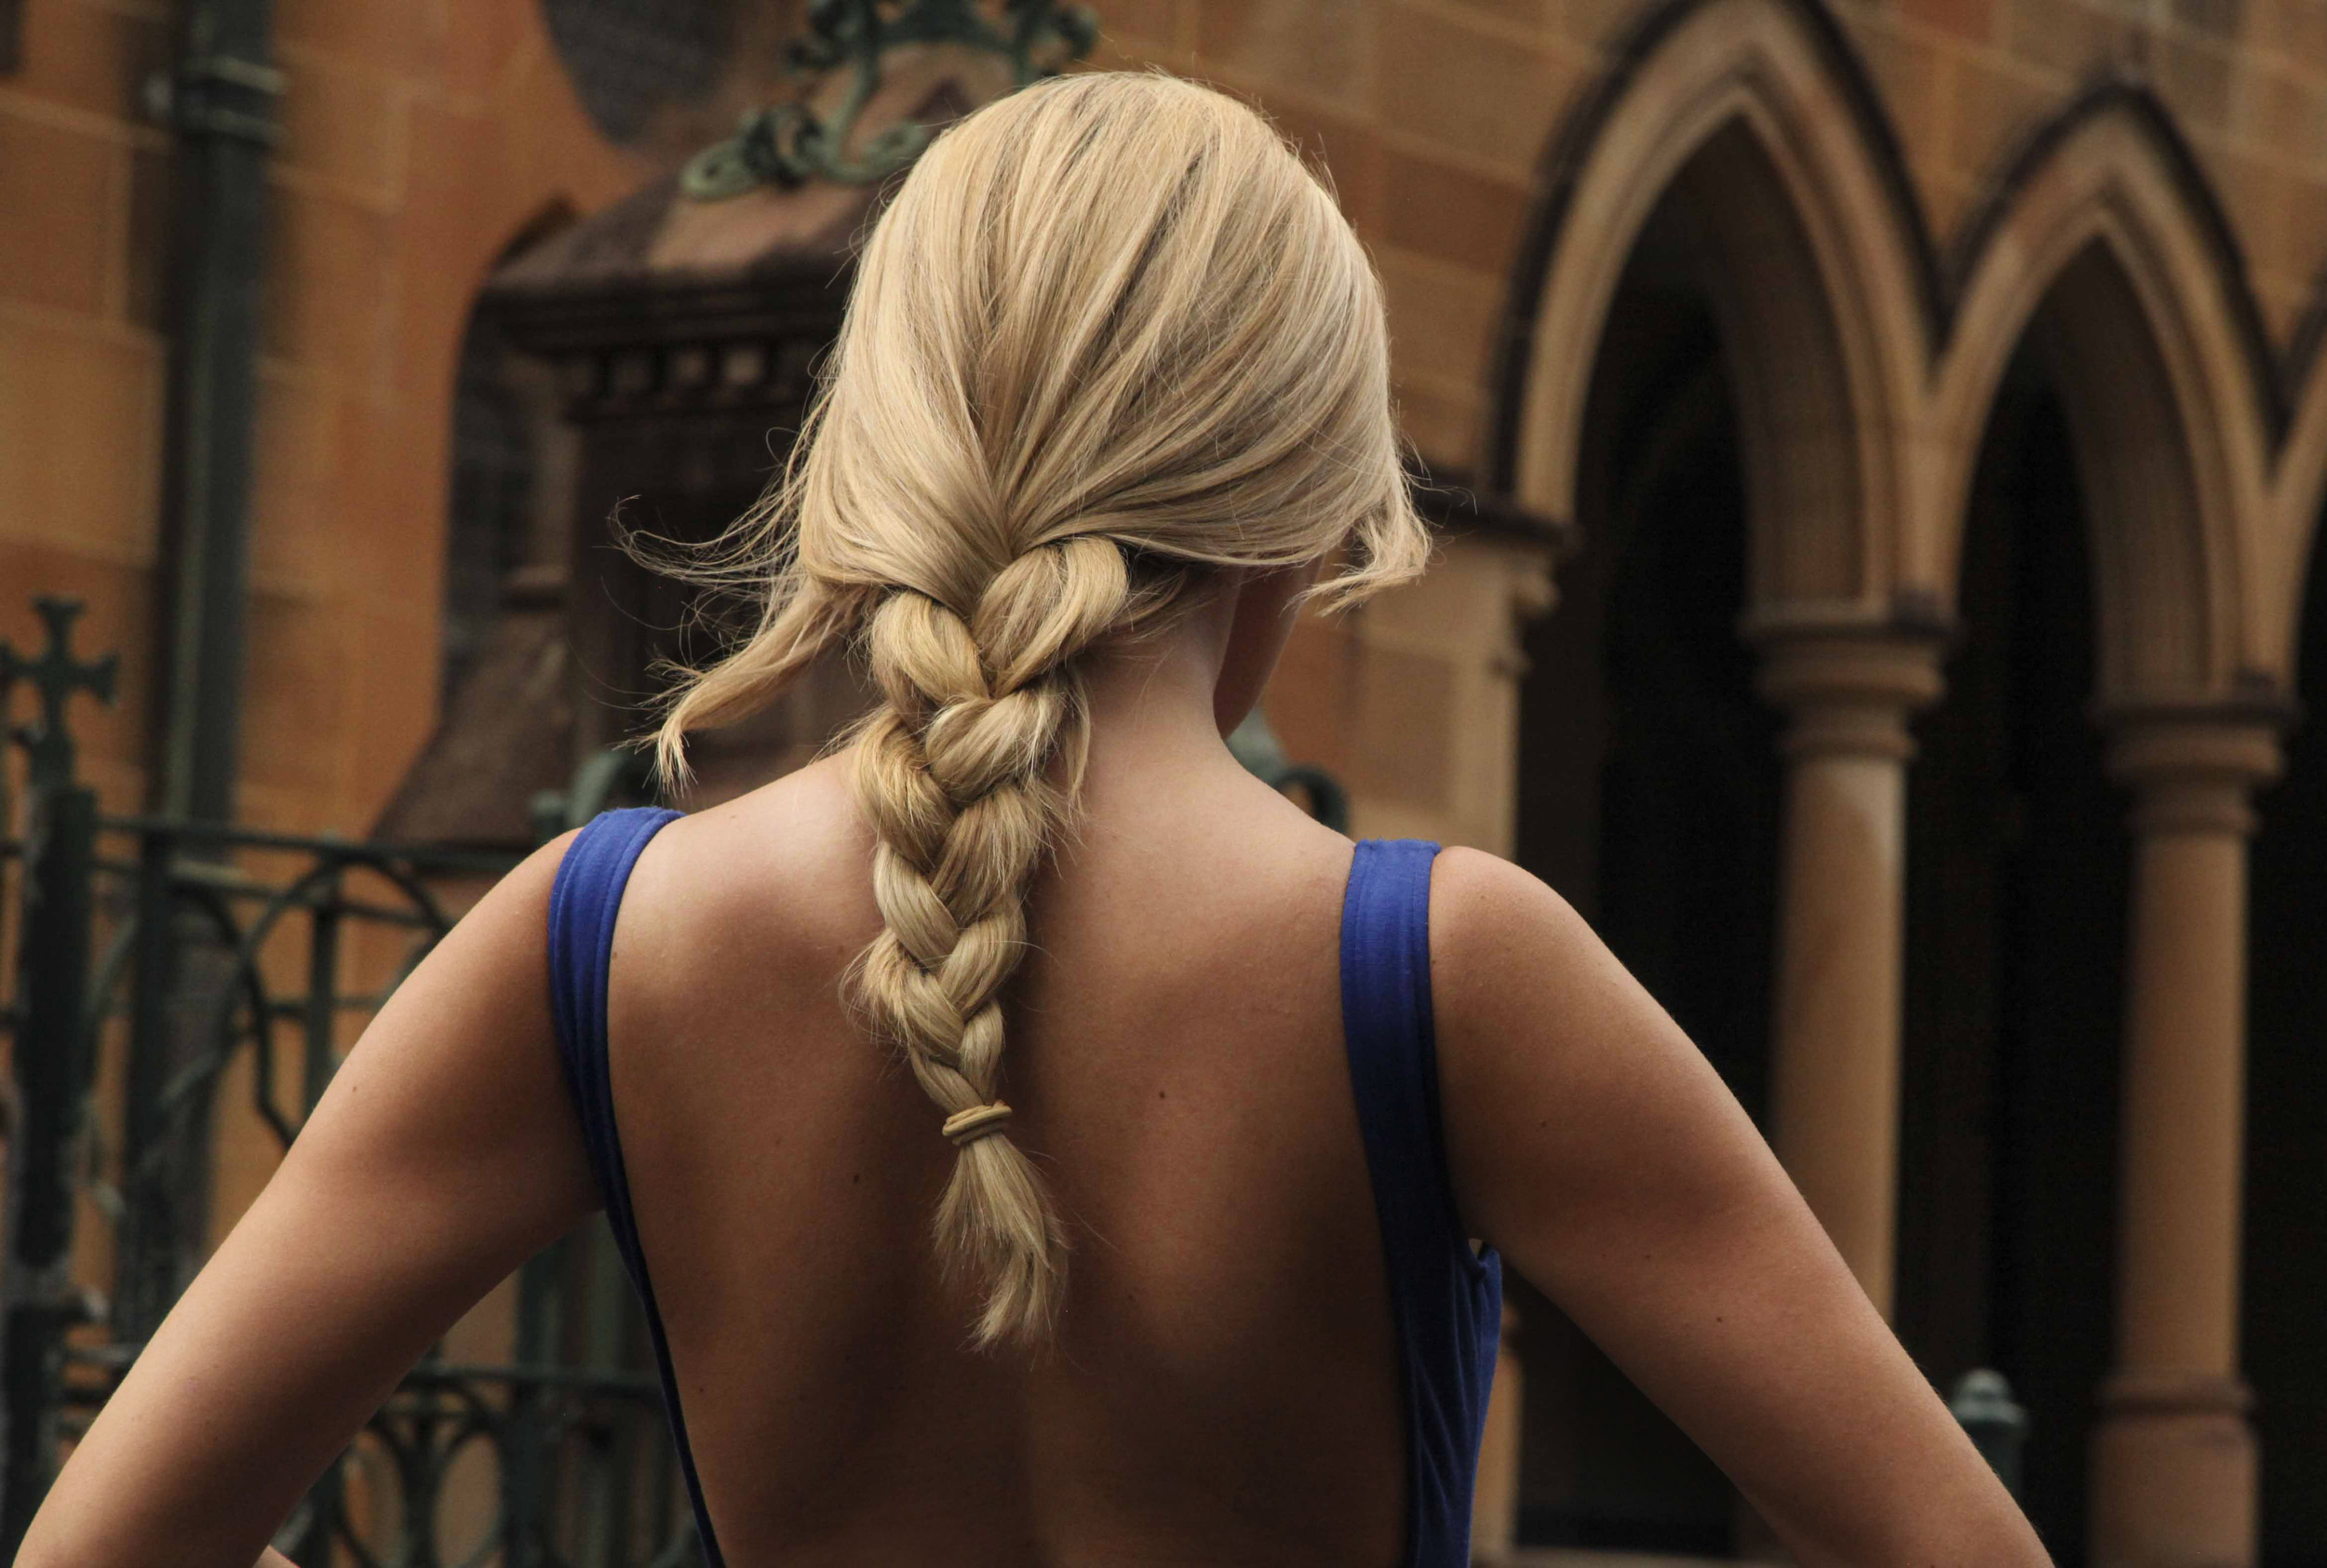 Blue dress and blonde braid